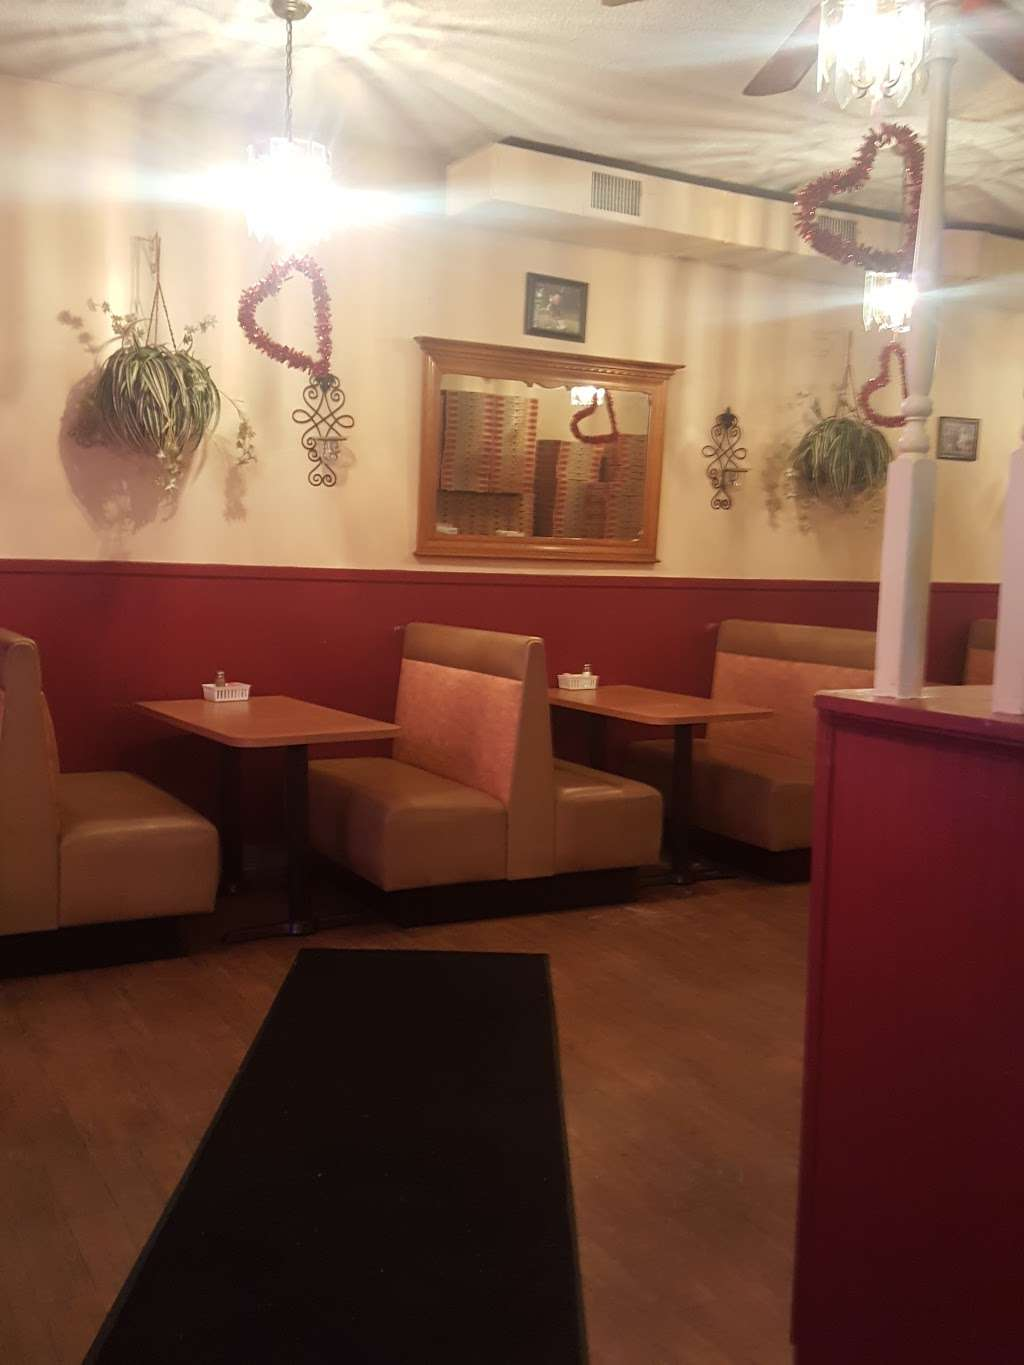 Expressos Pizza Restaurant - meal delivery  | Photo 4 of 5 | Address: 2949 Hartford Ave #3, Johnston, RI 02919, USA | Phone: (401) 934-2515